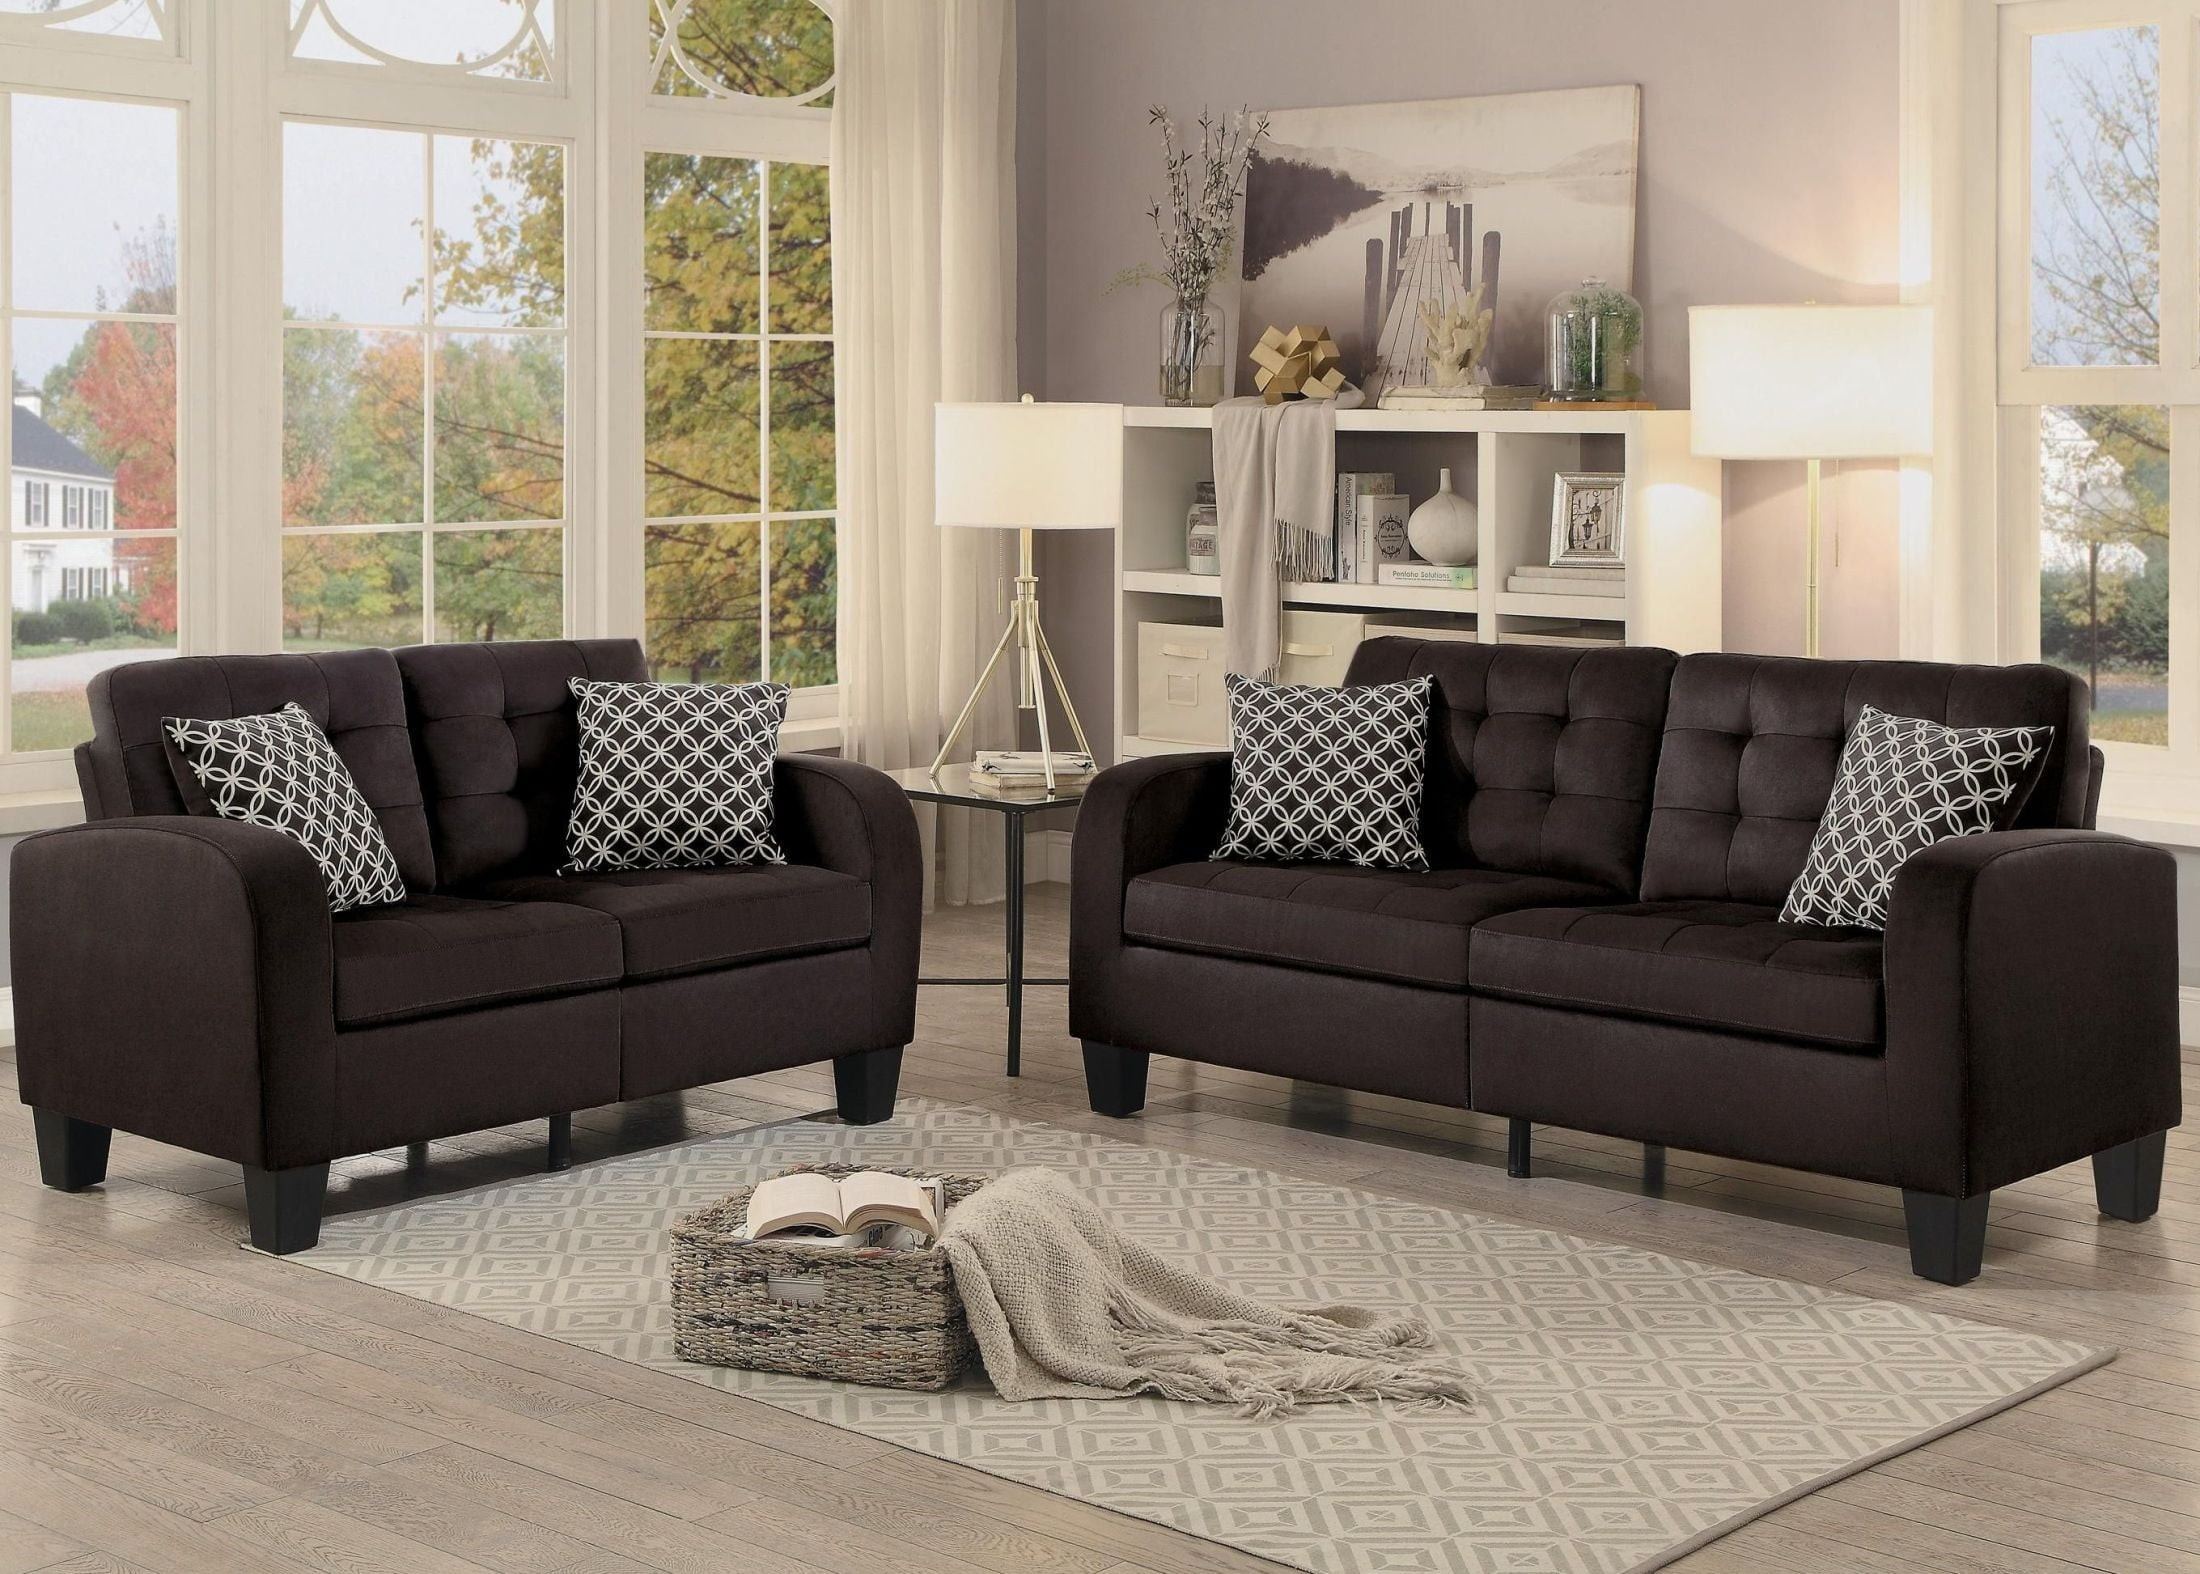 Sinclair Chocolate Living Room Set From Homelegance Coleman Furniture within 12 Awesome Concepts of How to Craft Chocolate Living Room Set